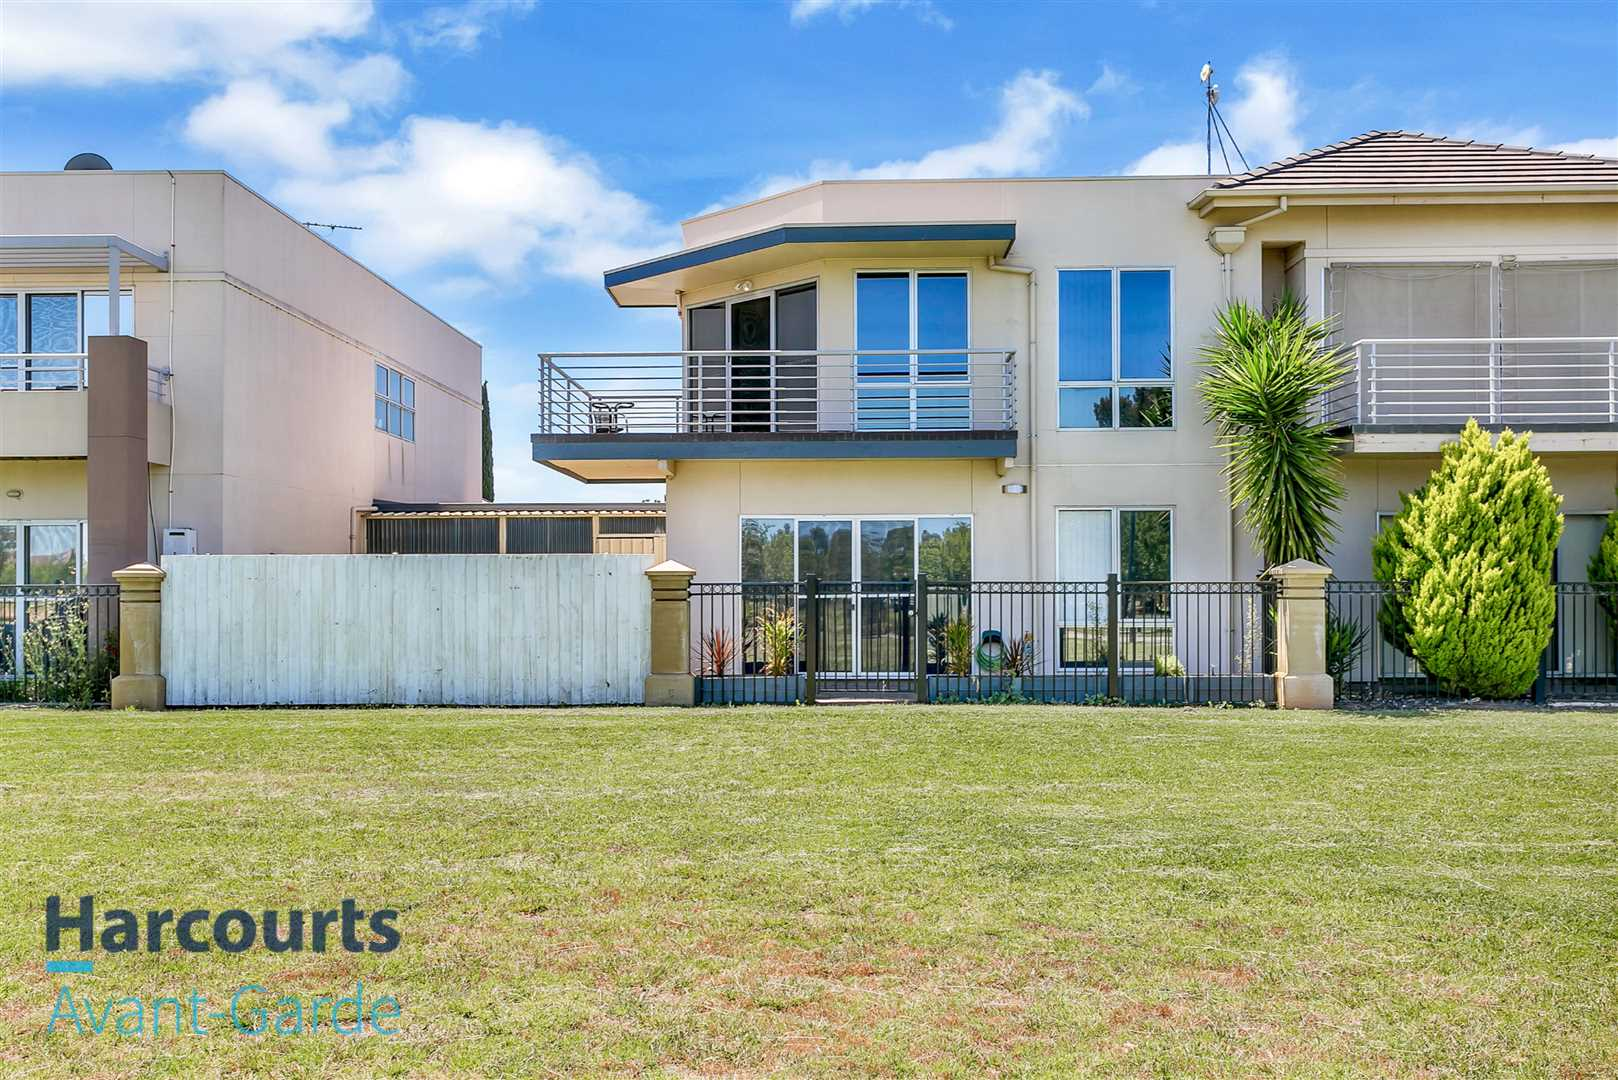 Townhouse In The Heart Of Mawson Lakes